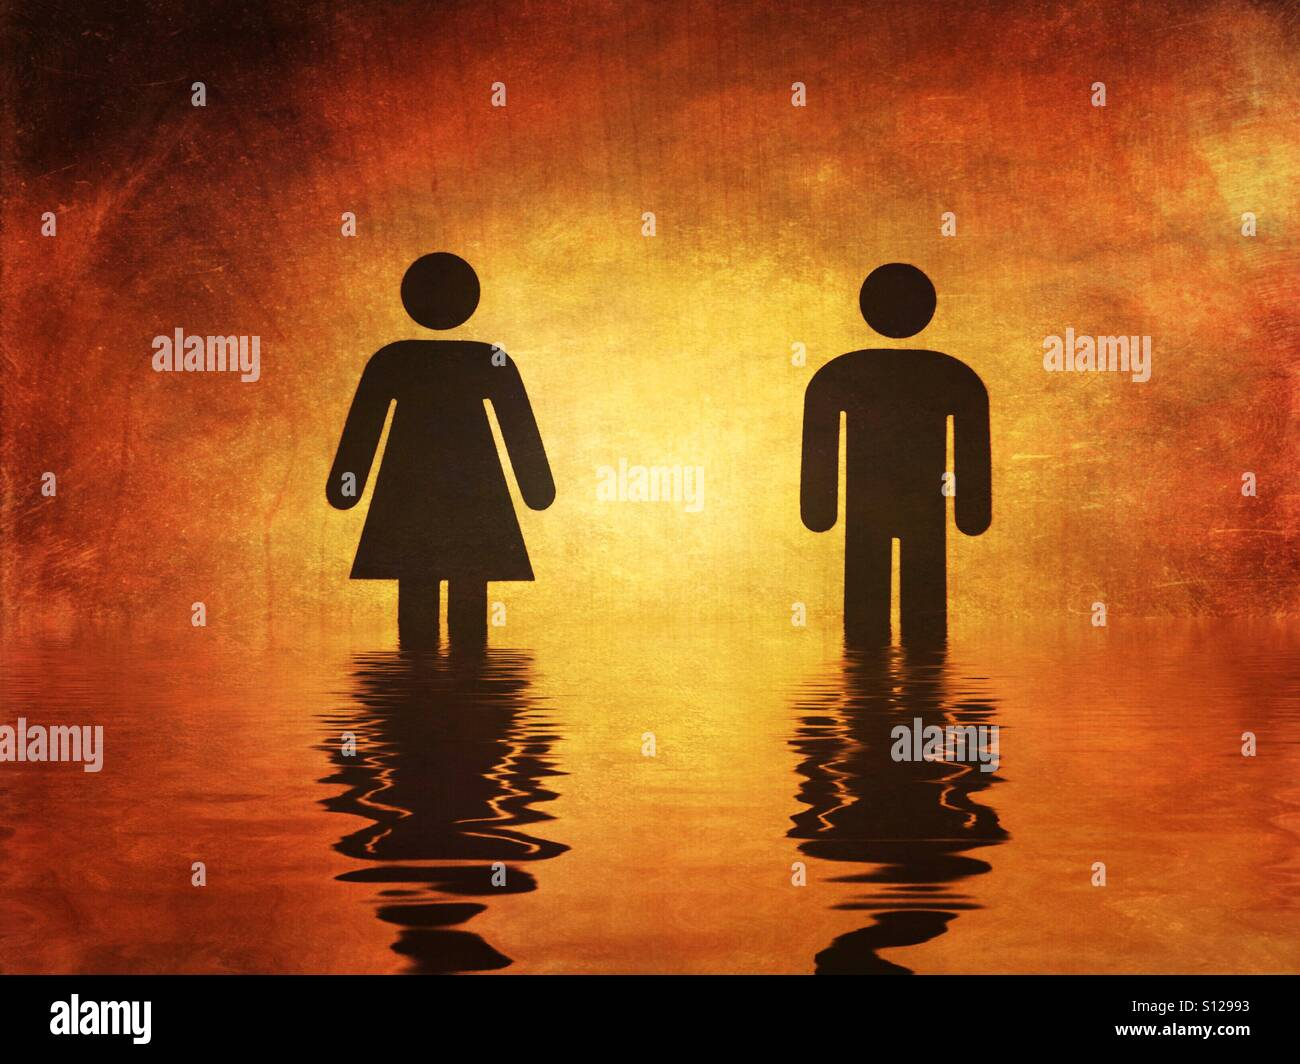 Woman and man symbol with water reflection effect added - Stock Image